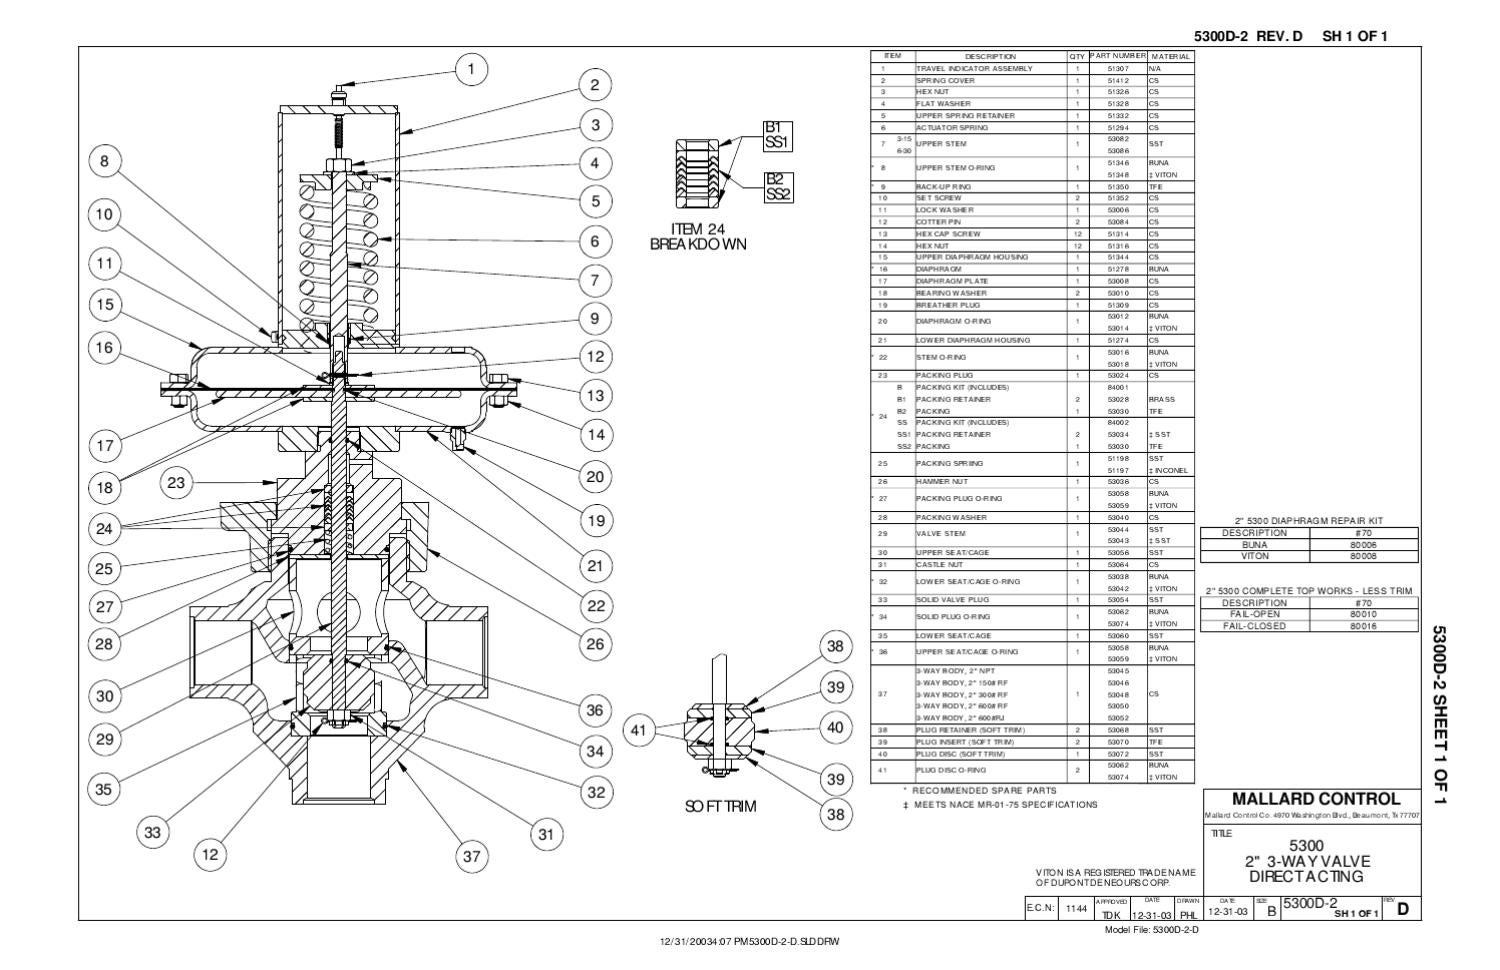 5300 Valve Direct 2 In Schematic by RMC Process Controls